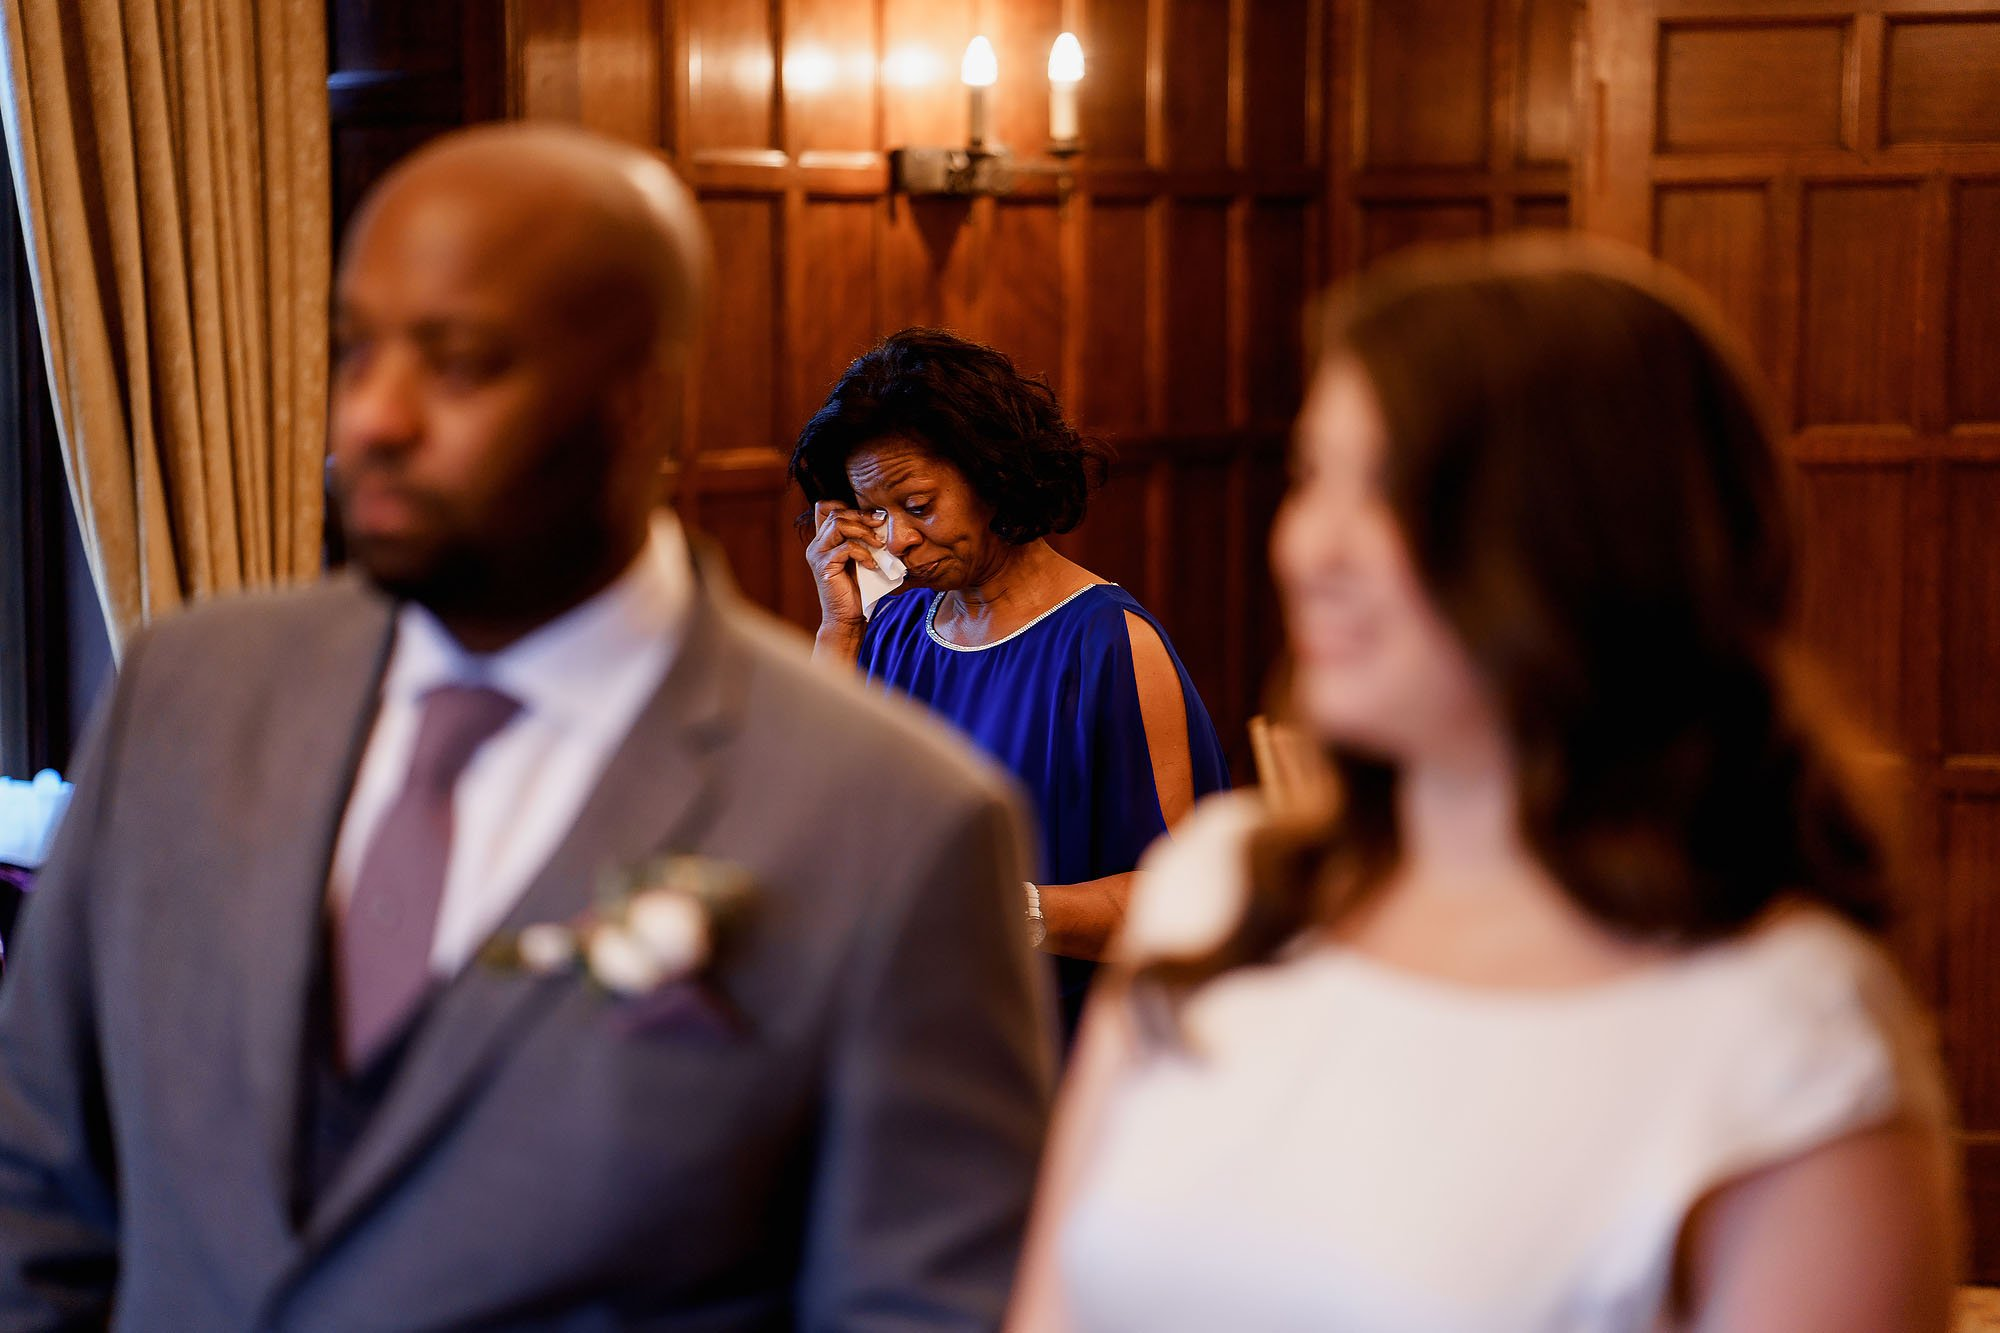 The best wedding photography of 2020 - Cheshire wedding photographers ARJ Photography